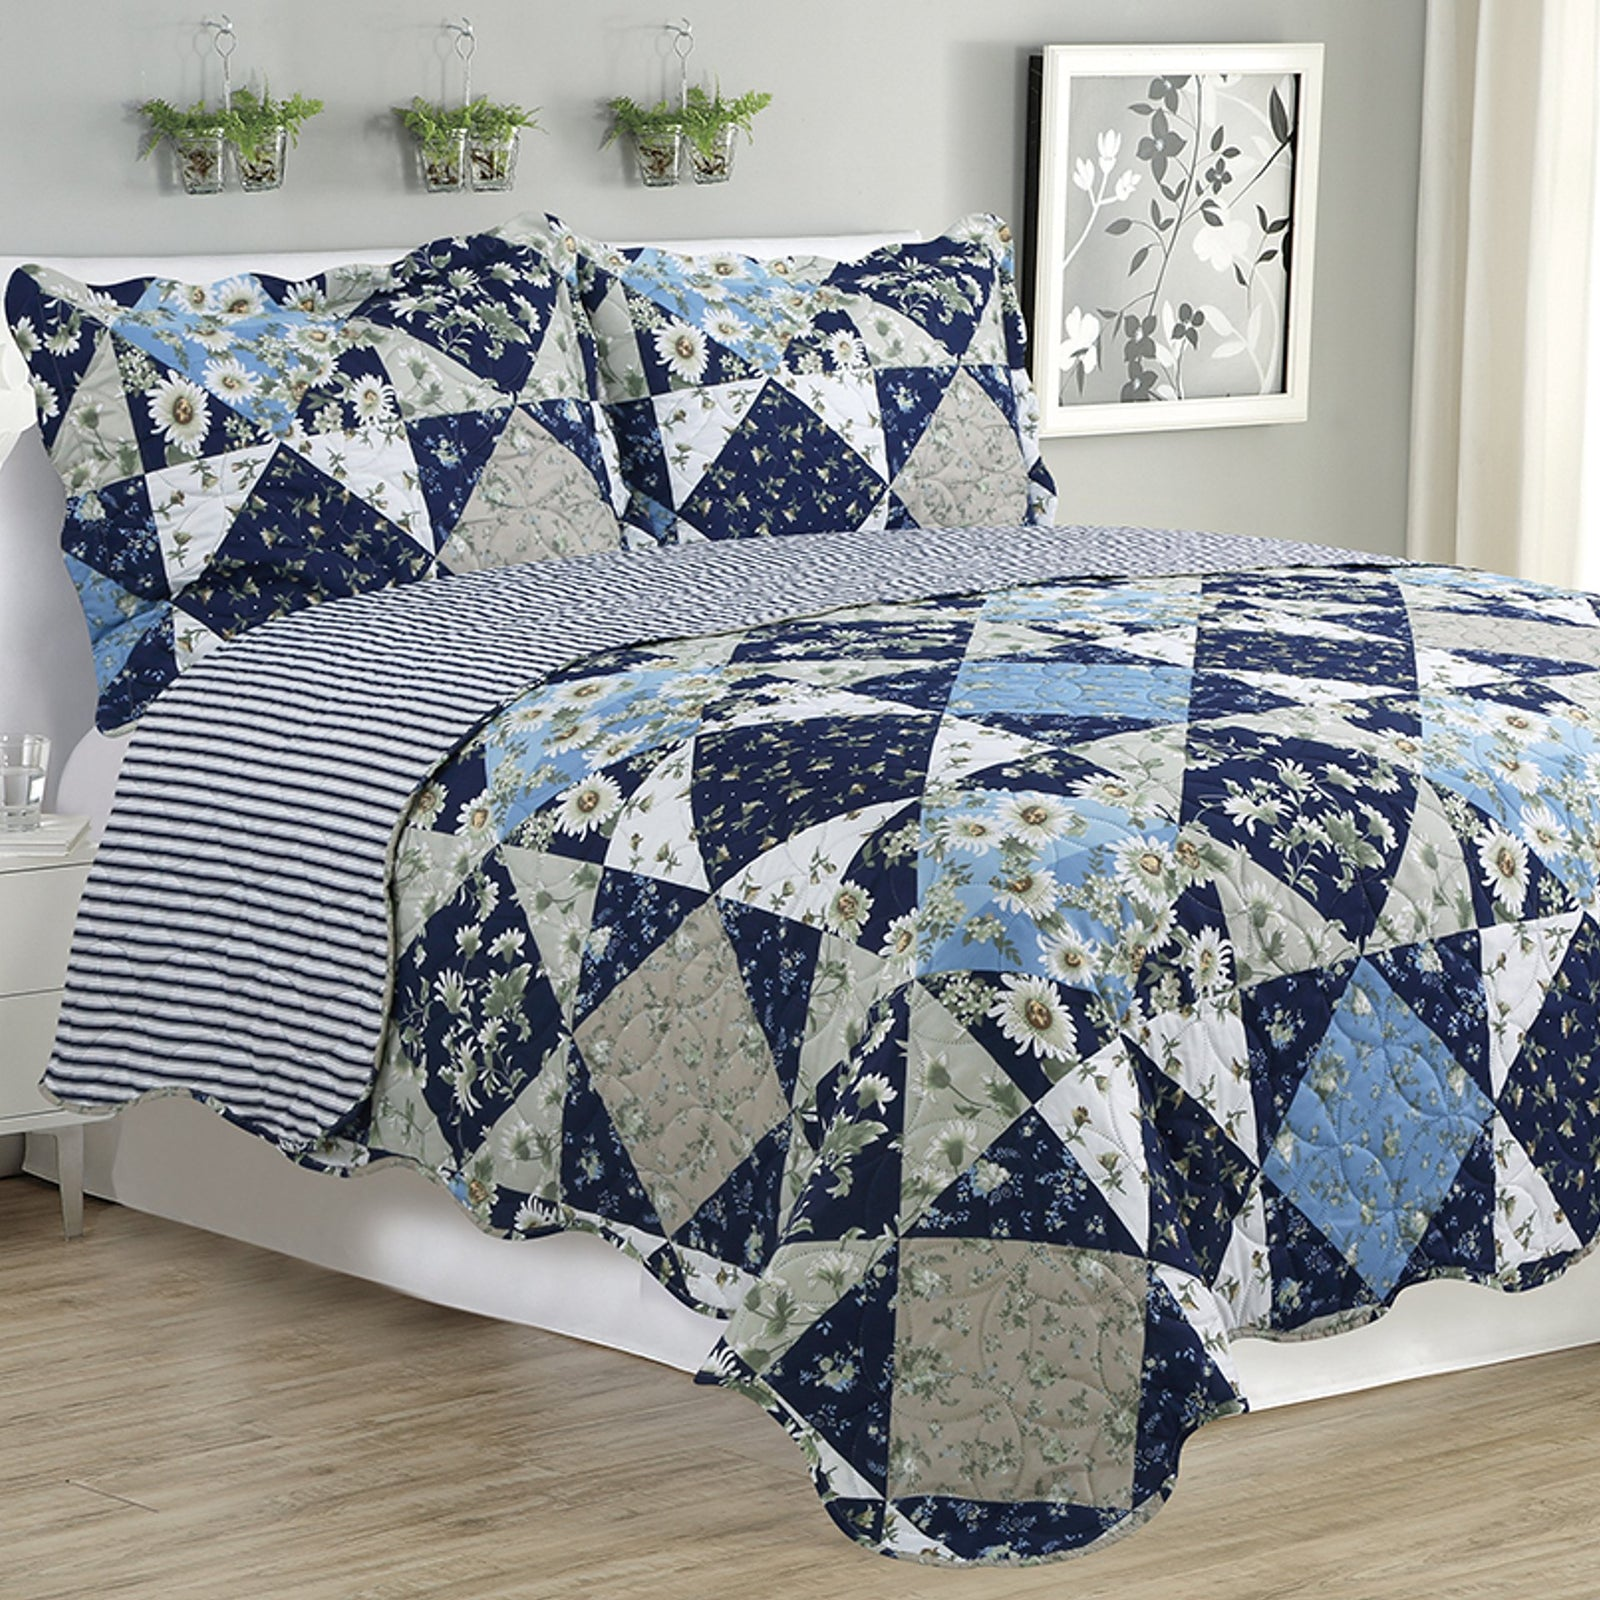 Kim - 3 Piece Quilt Set - Navy Bedtime